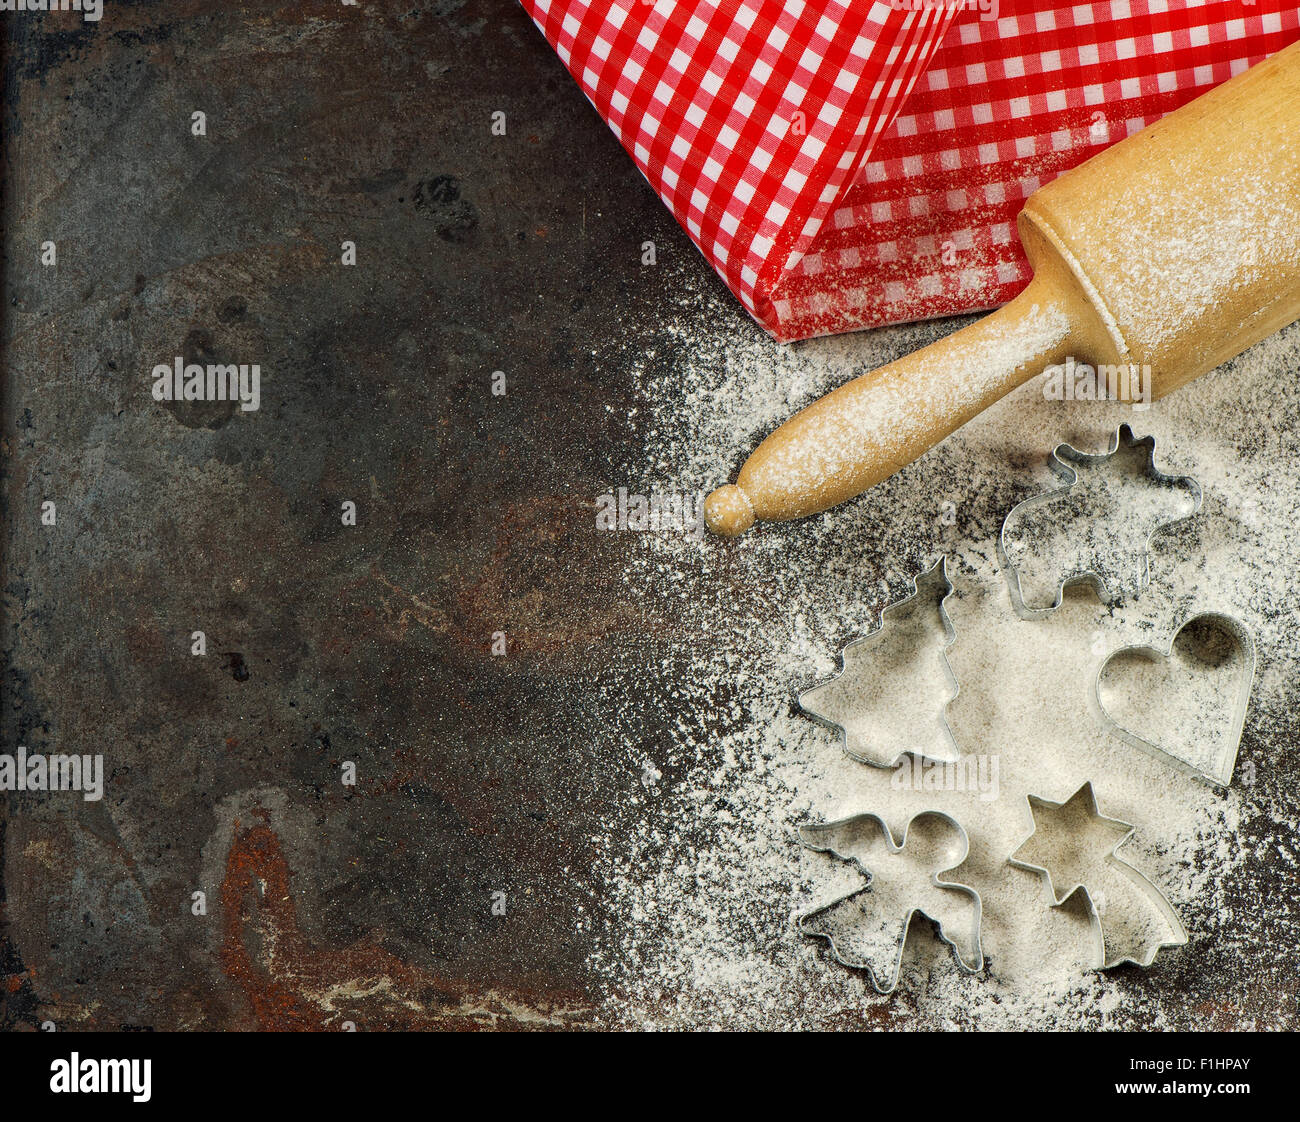 Flour, rolling pin and cookie cutters. Christmas food. Baking ingredients and tolls for dough preparation. - Stock Image